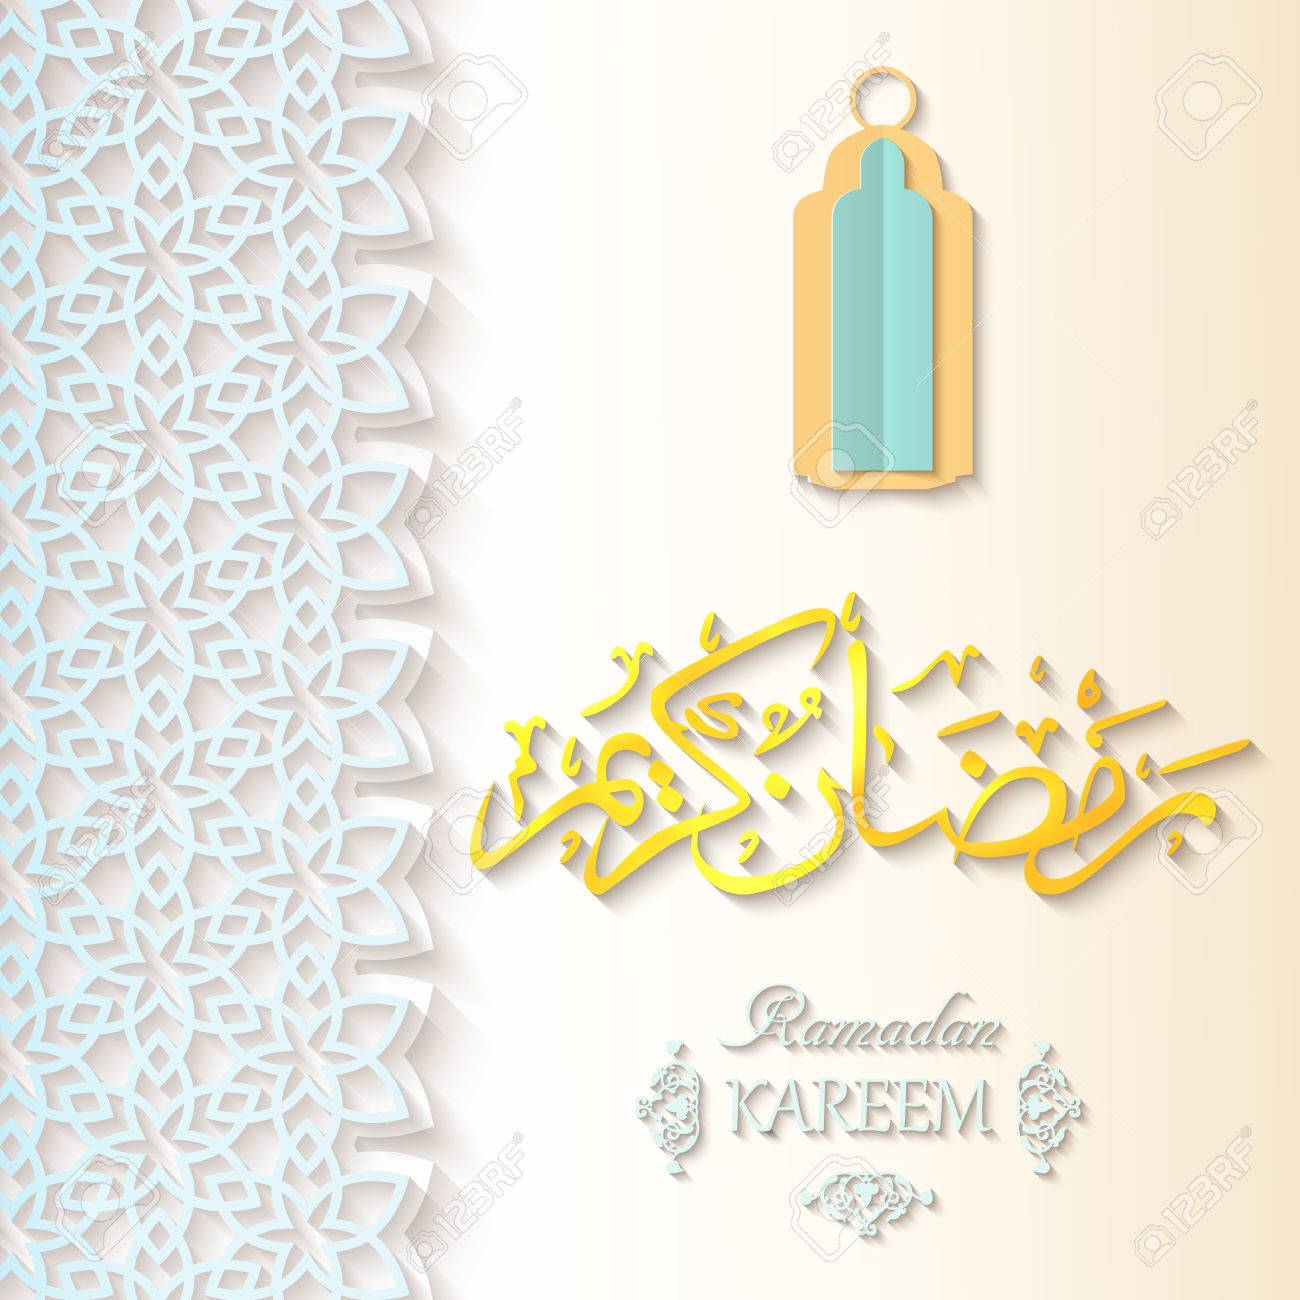 Ramadan kareem greeting card with arabic lamp fanous muslim ramadan kareem greeting card with arabic lamp fanous muslim symbol arabic calligraphy is translated m4hsunfo